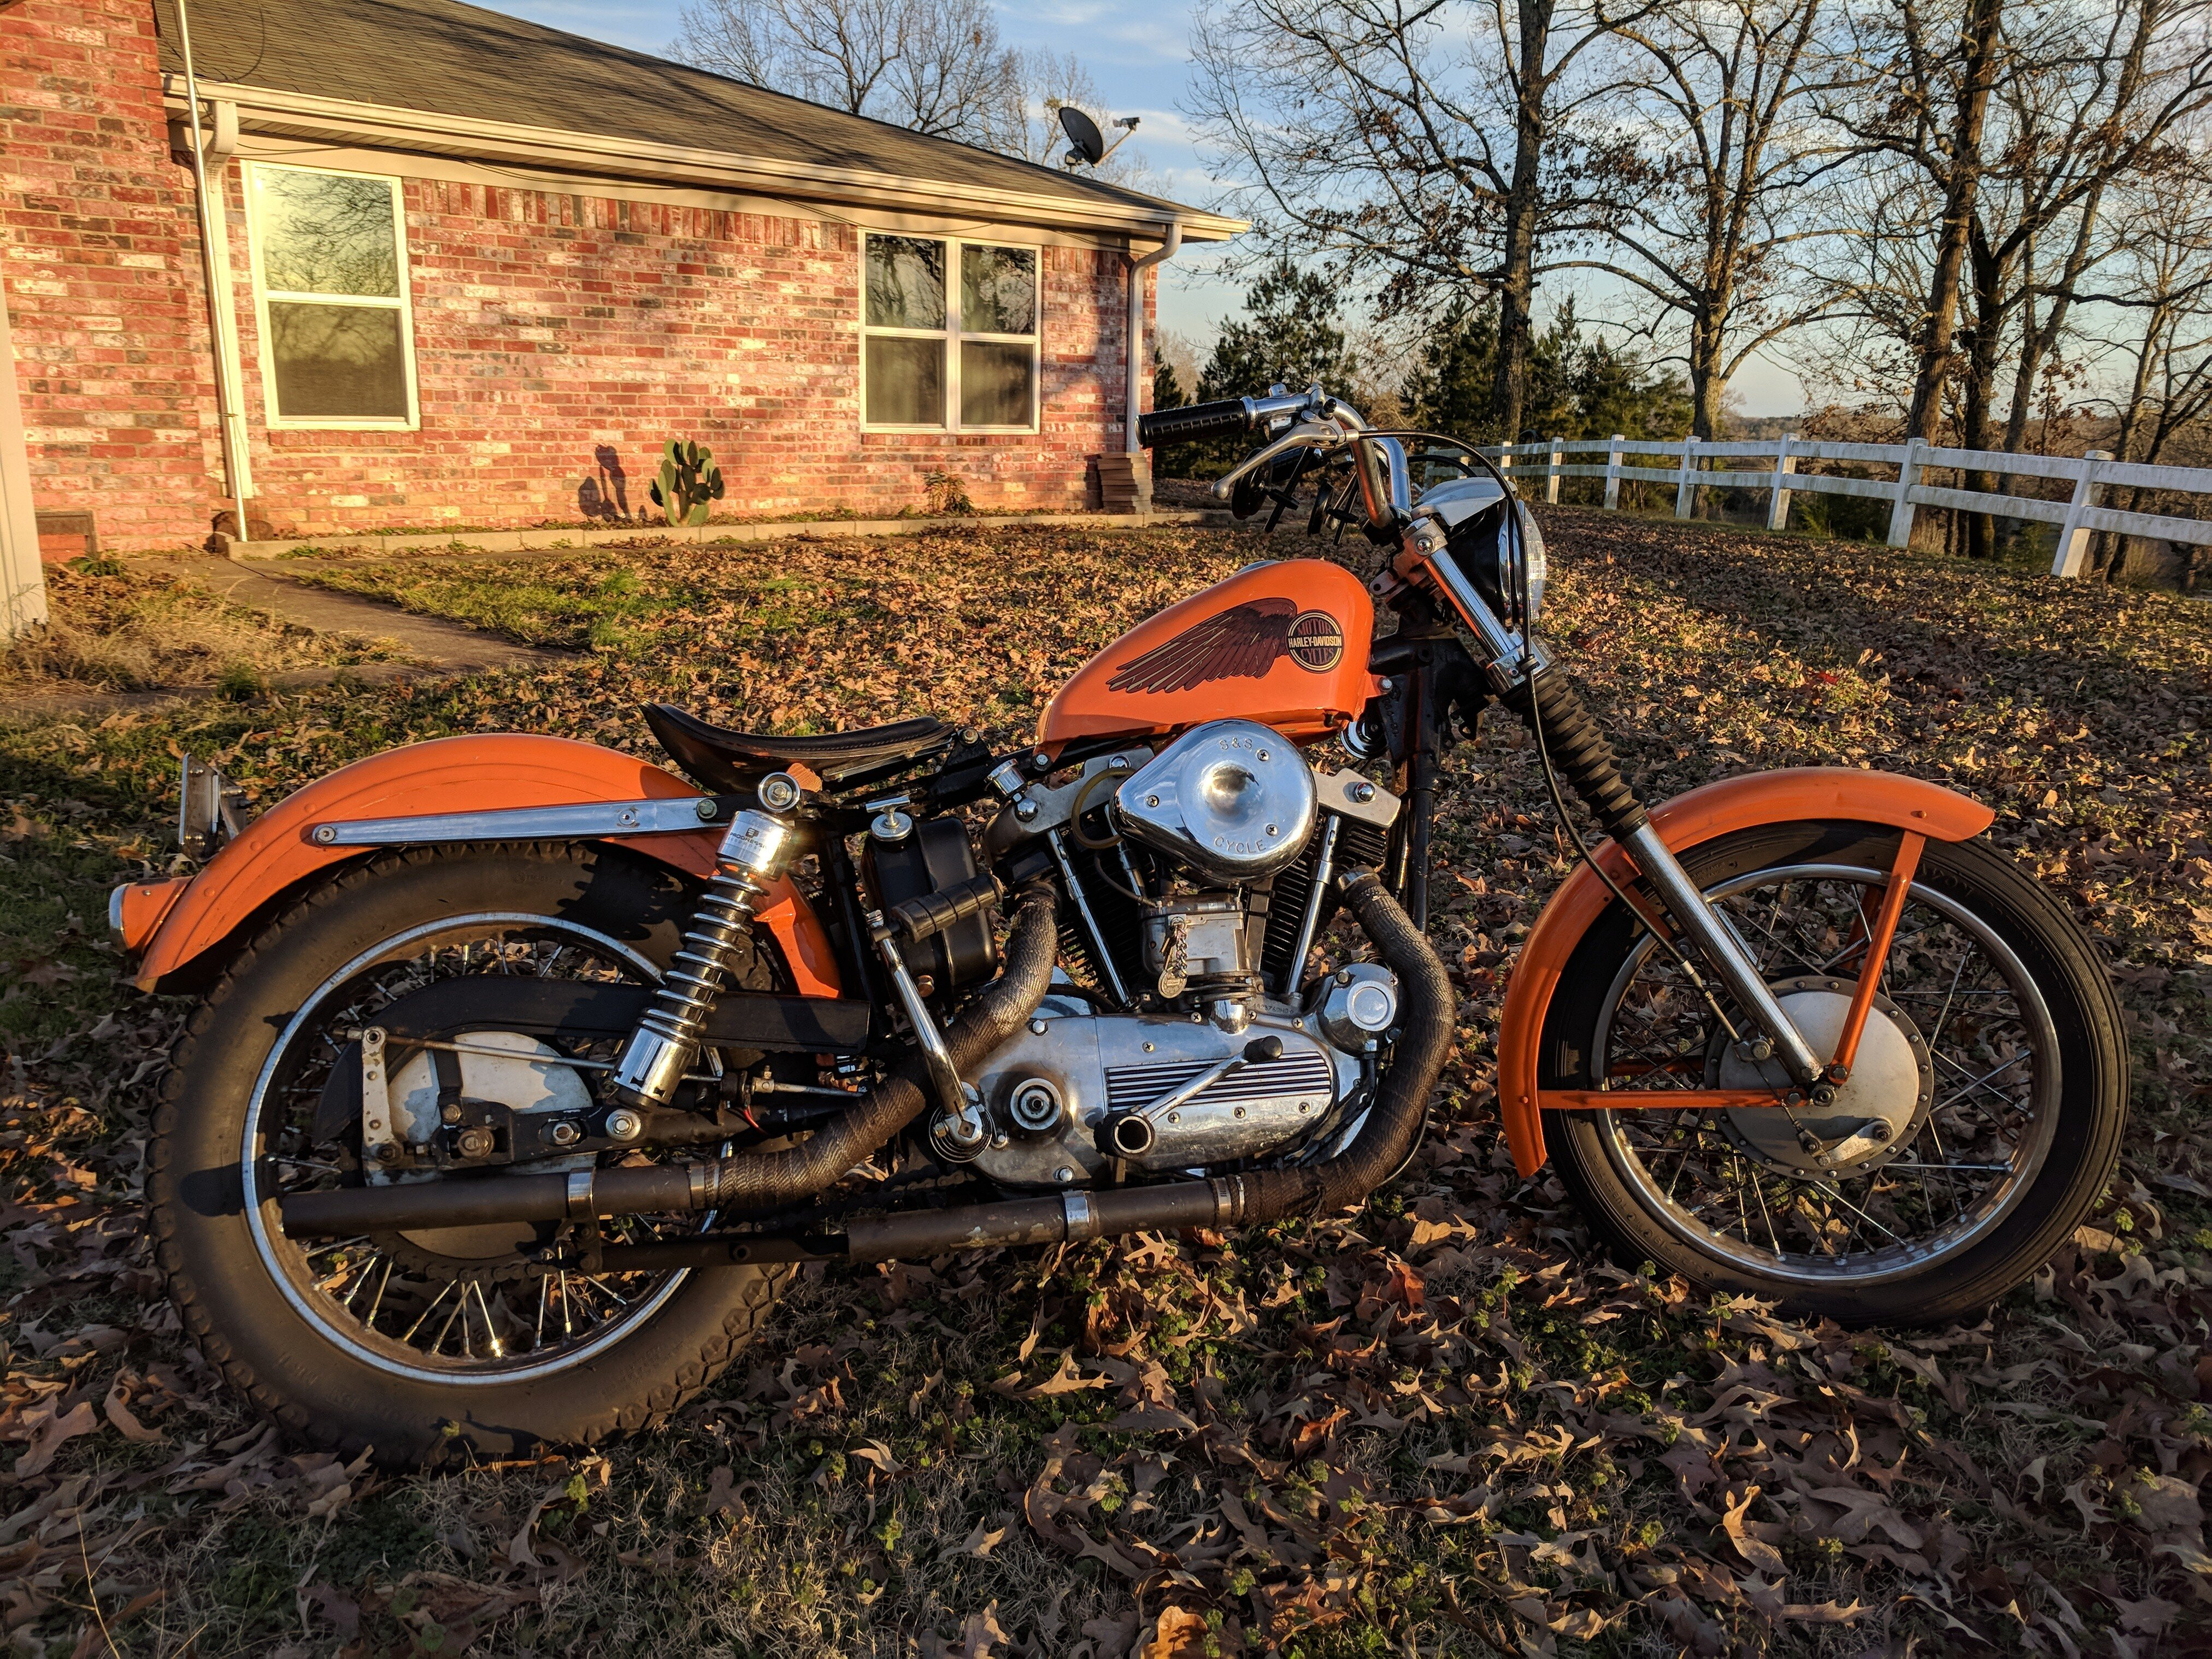 Motorcycle Dealers Near My Location >> 1970 Harley-Davidson Sportster Motorcycles for Sale - Motorcycles on Autotrader